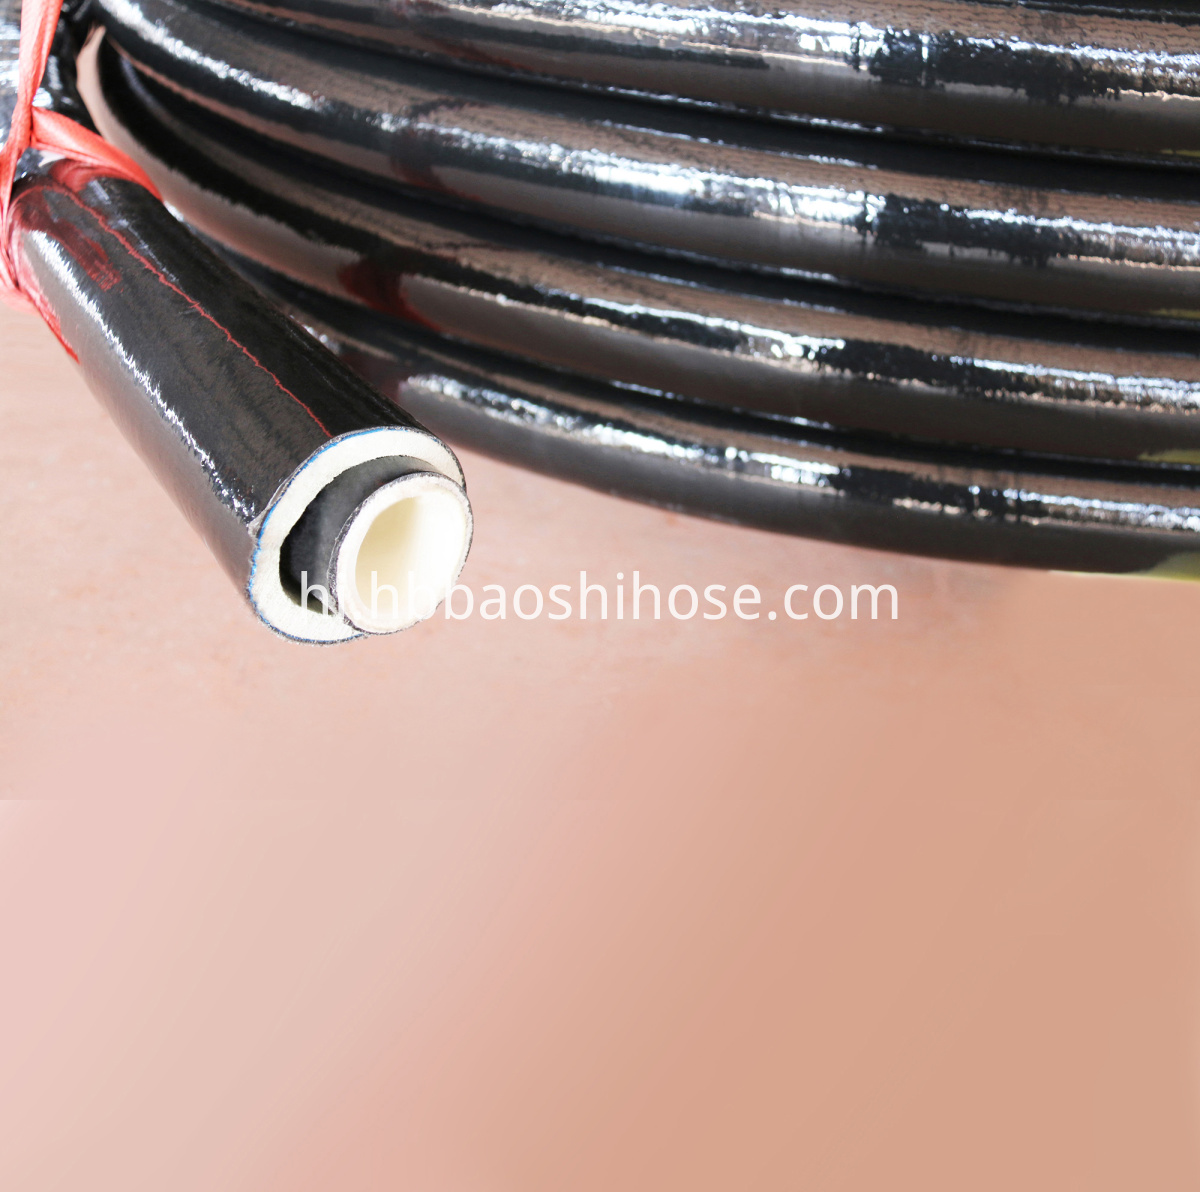 Flexible Alcohol Hose